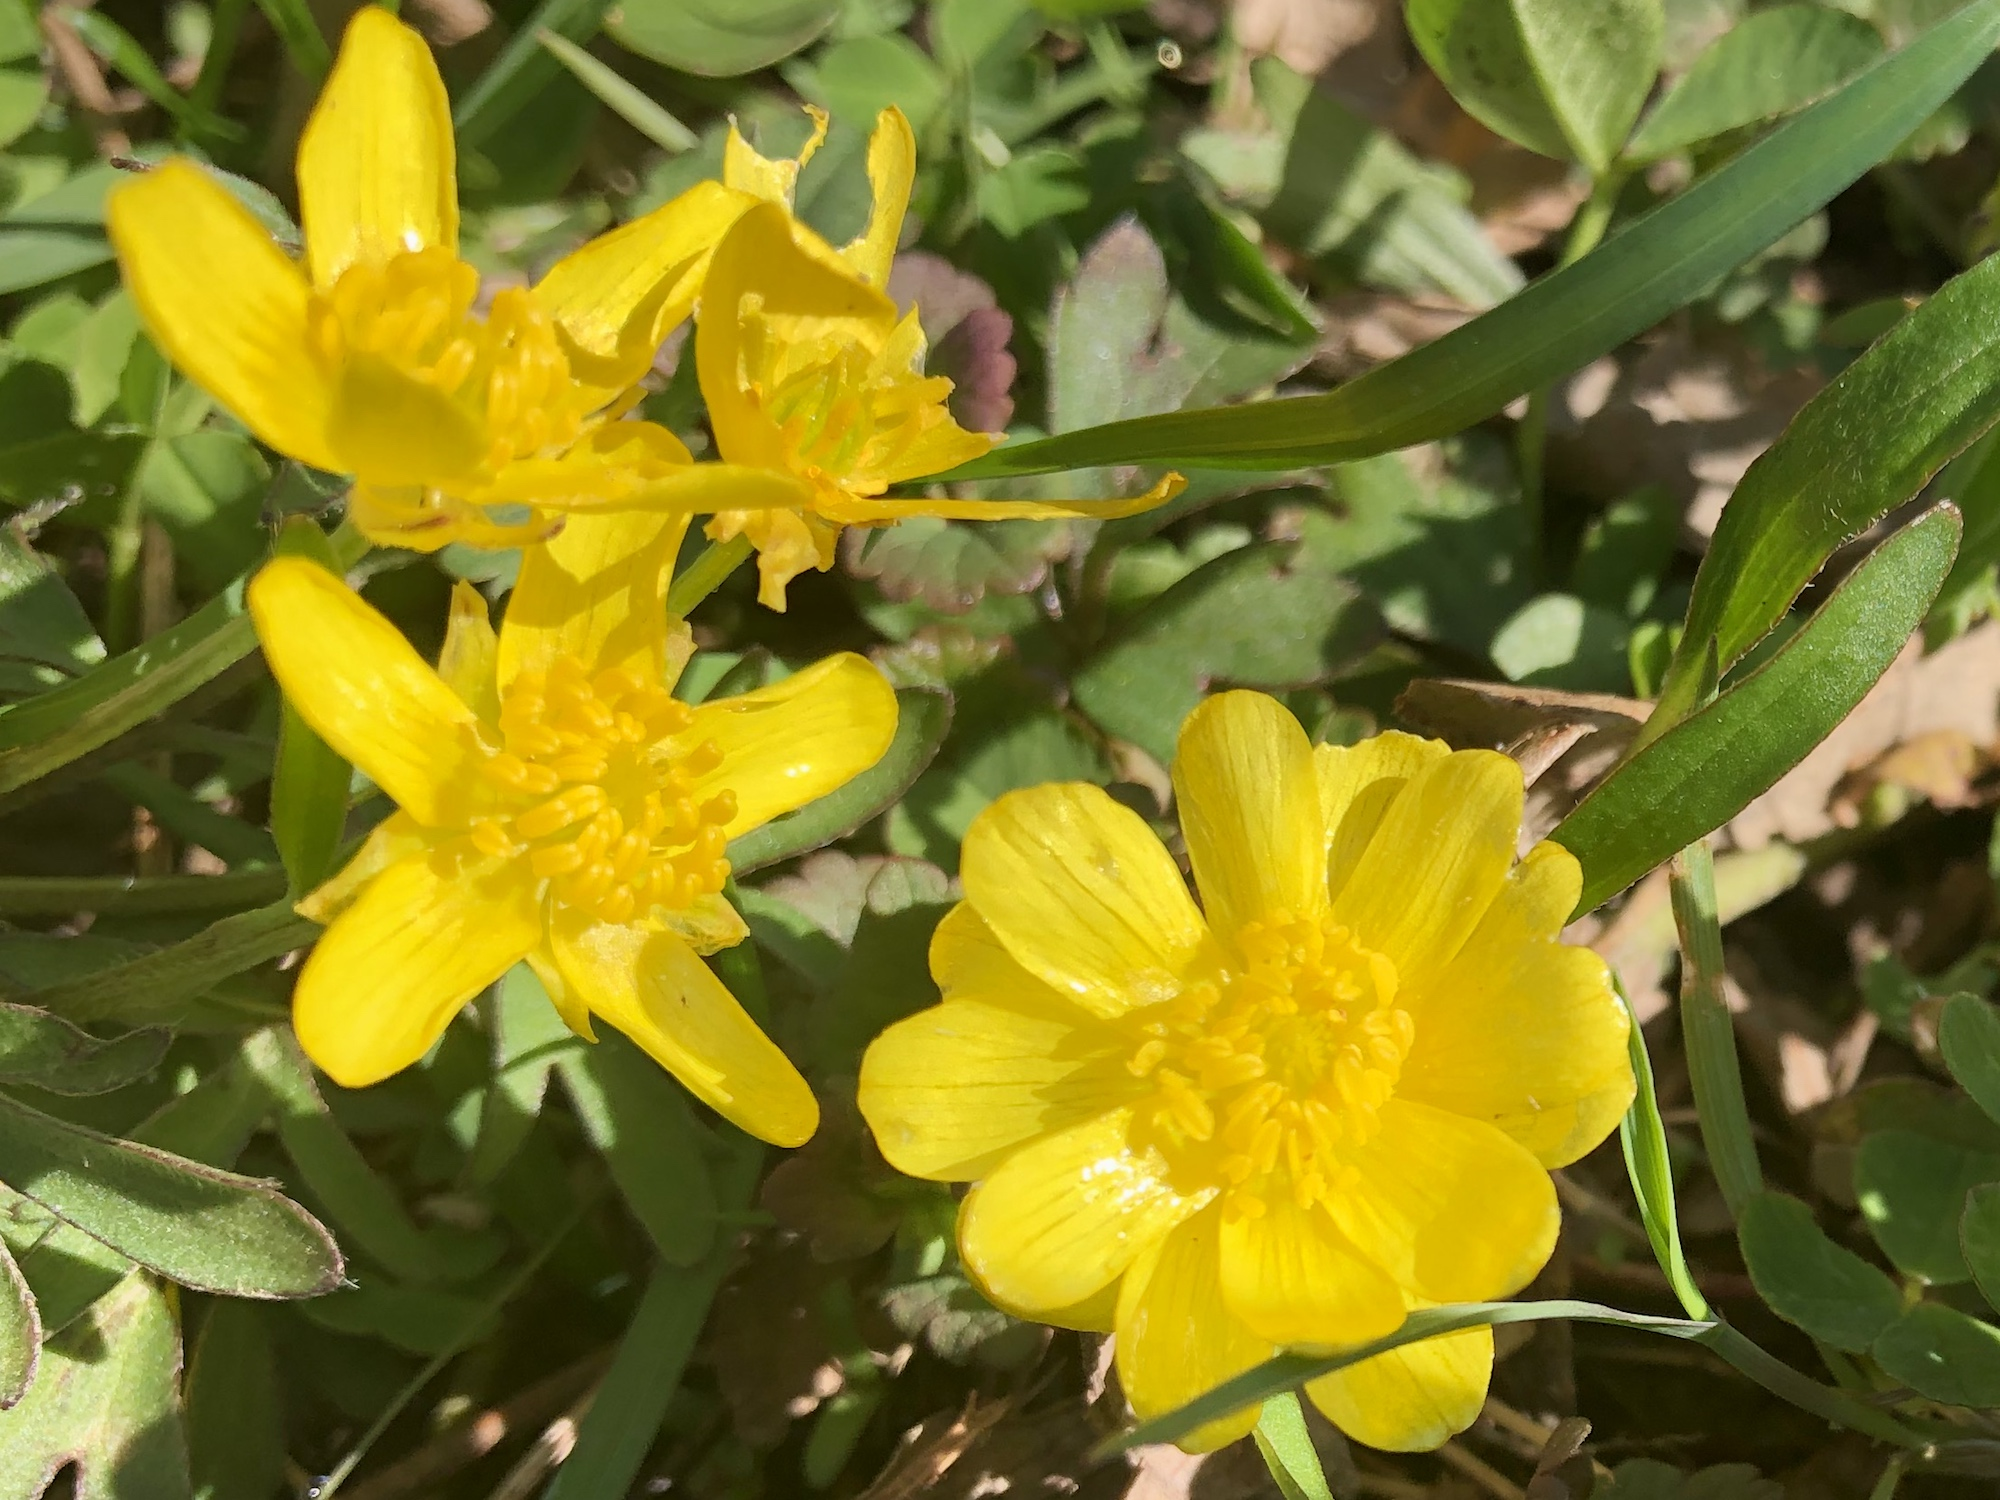 Early Buttercup in Nakoma Park in Madison, Wisconsin on April 30, 2020.